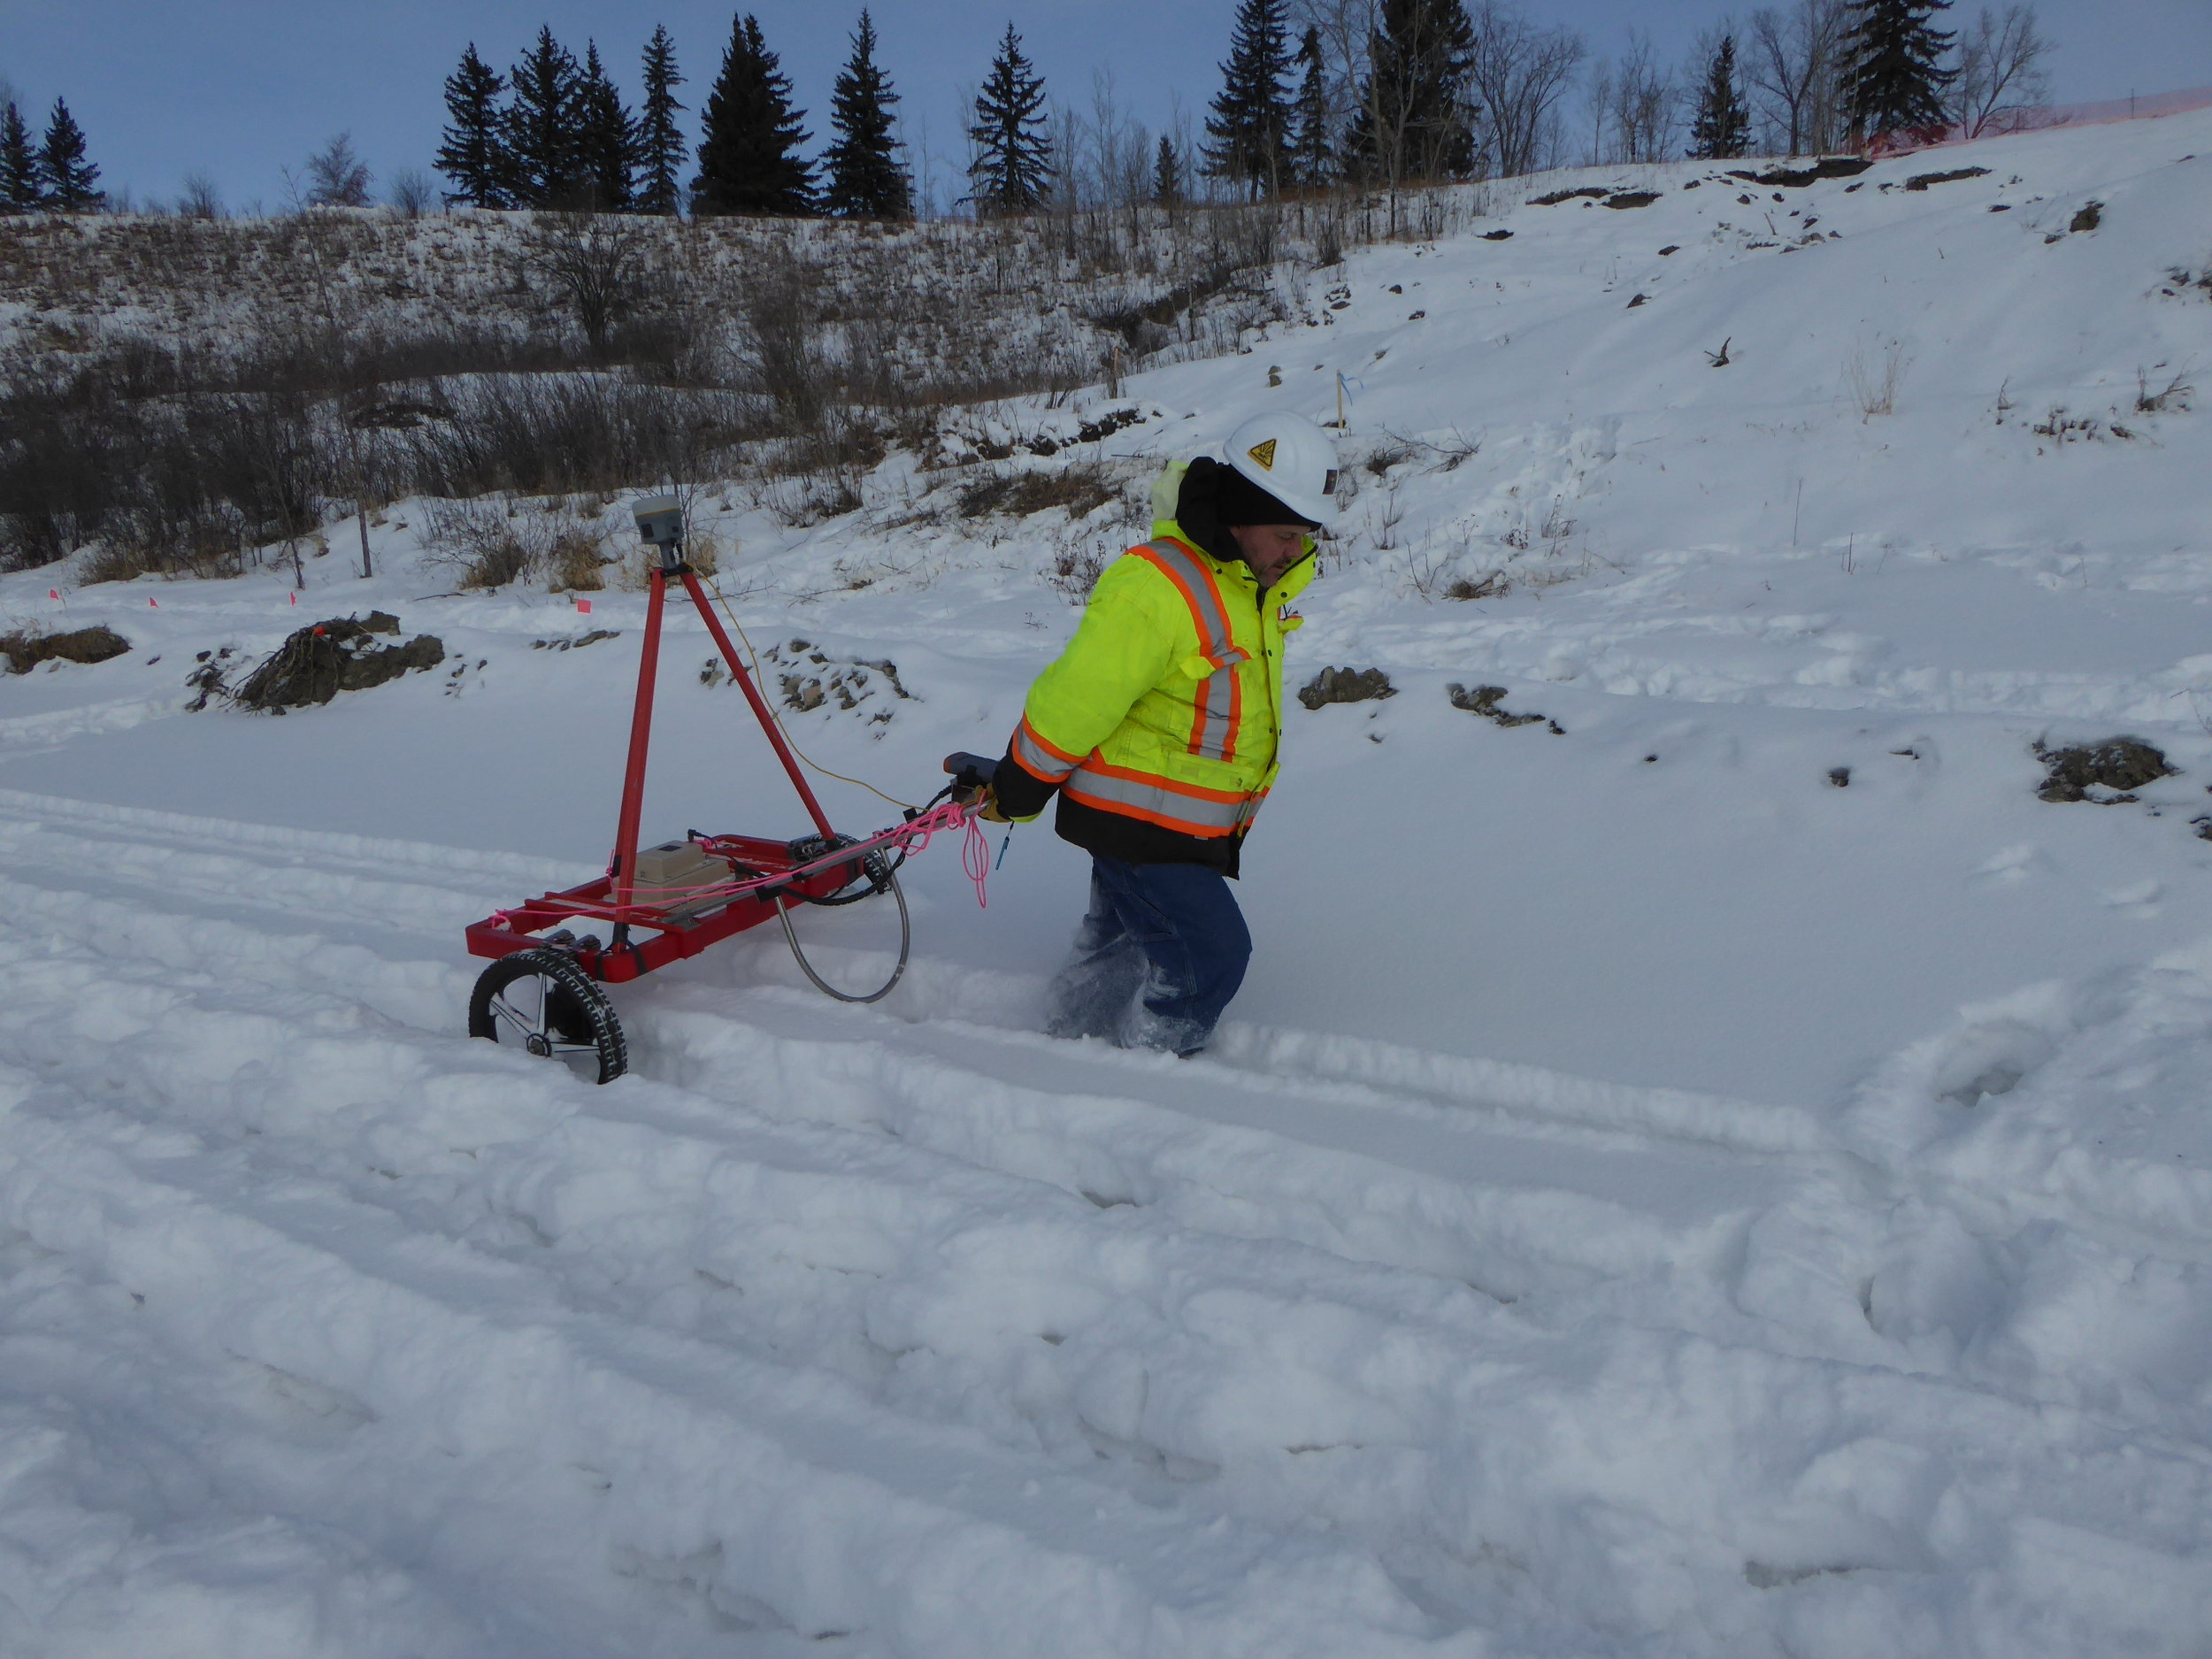 KIDCO - 37th St Storm Trunk Relocation - EM Data Collection - Pic 5 - 22 Feb 18.JPG